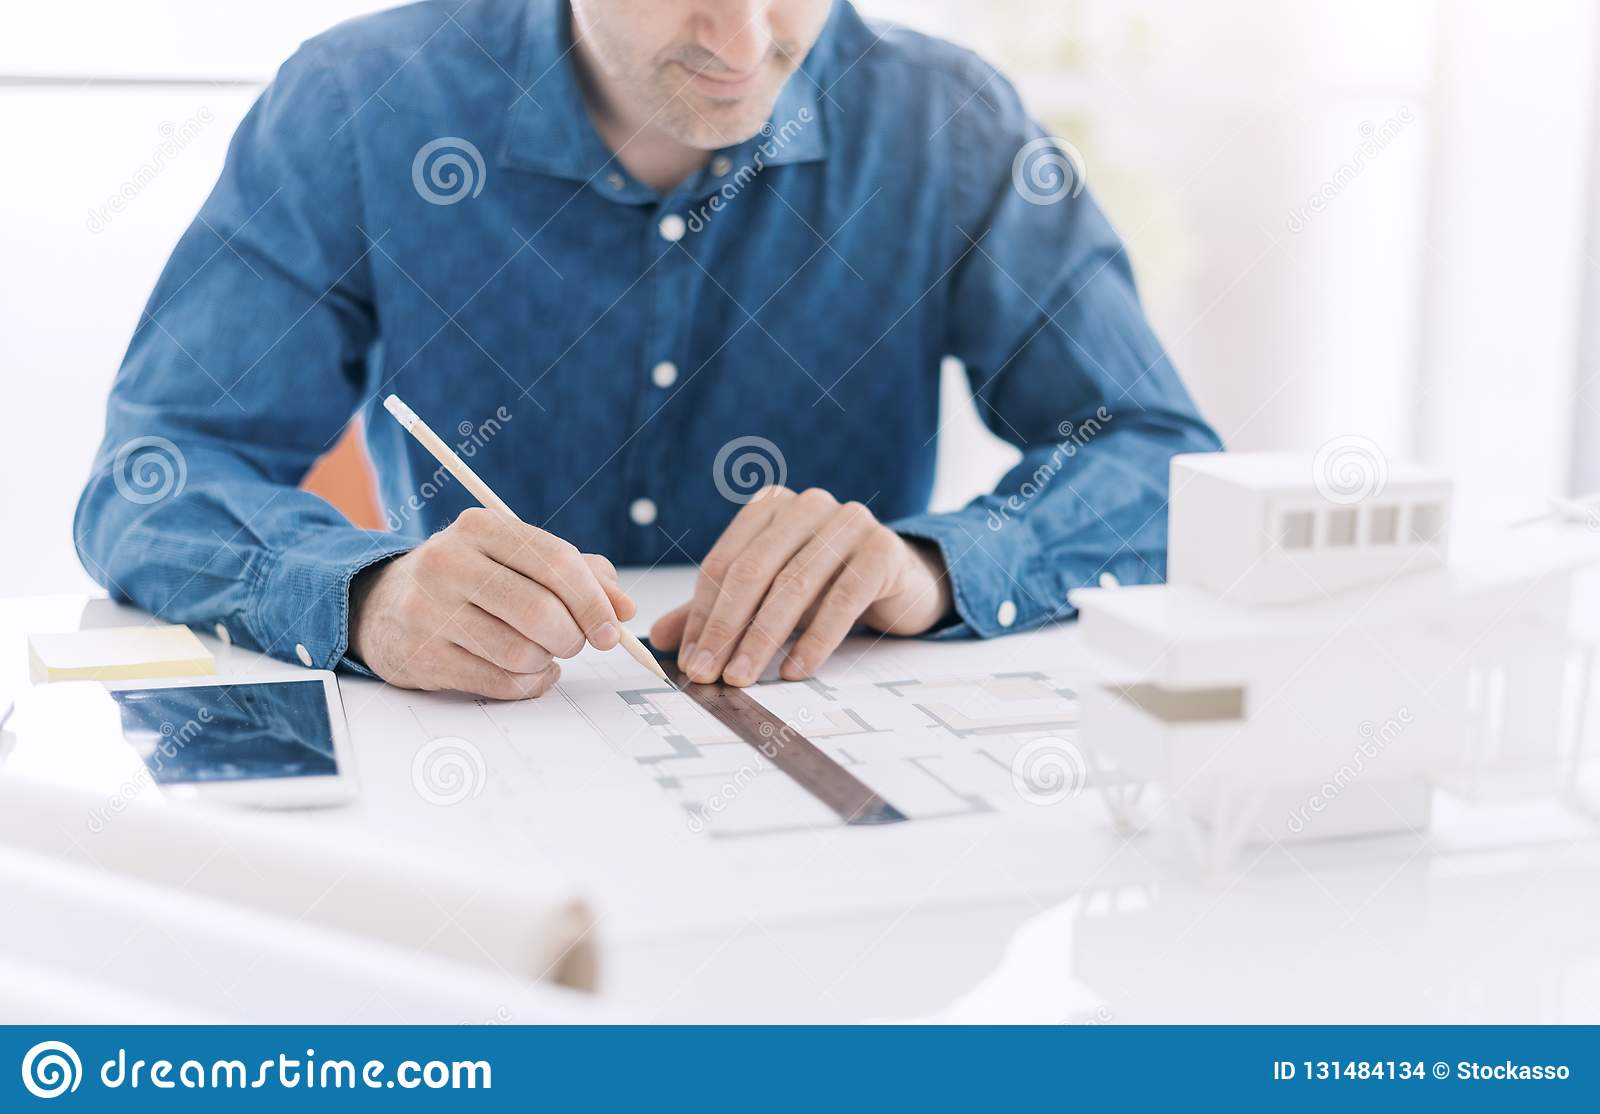 Professional Architect Working At Office Desk, He Is Drawing